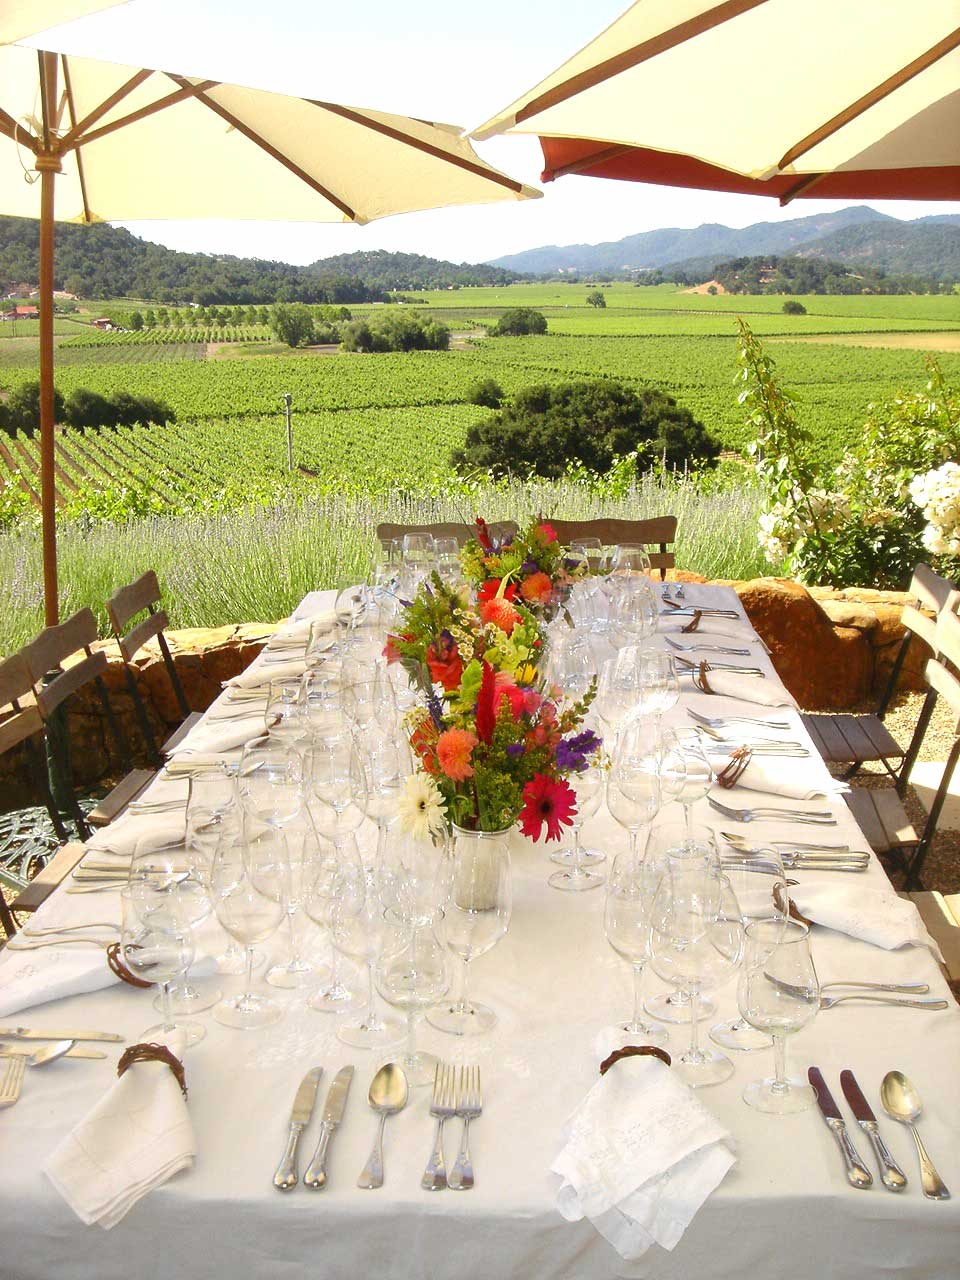 Tabletop design with crystal and flowers overlooking a vineyard in Napa valley